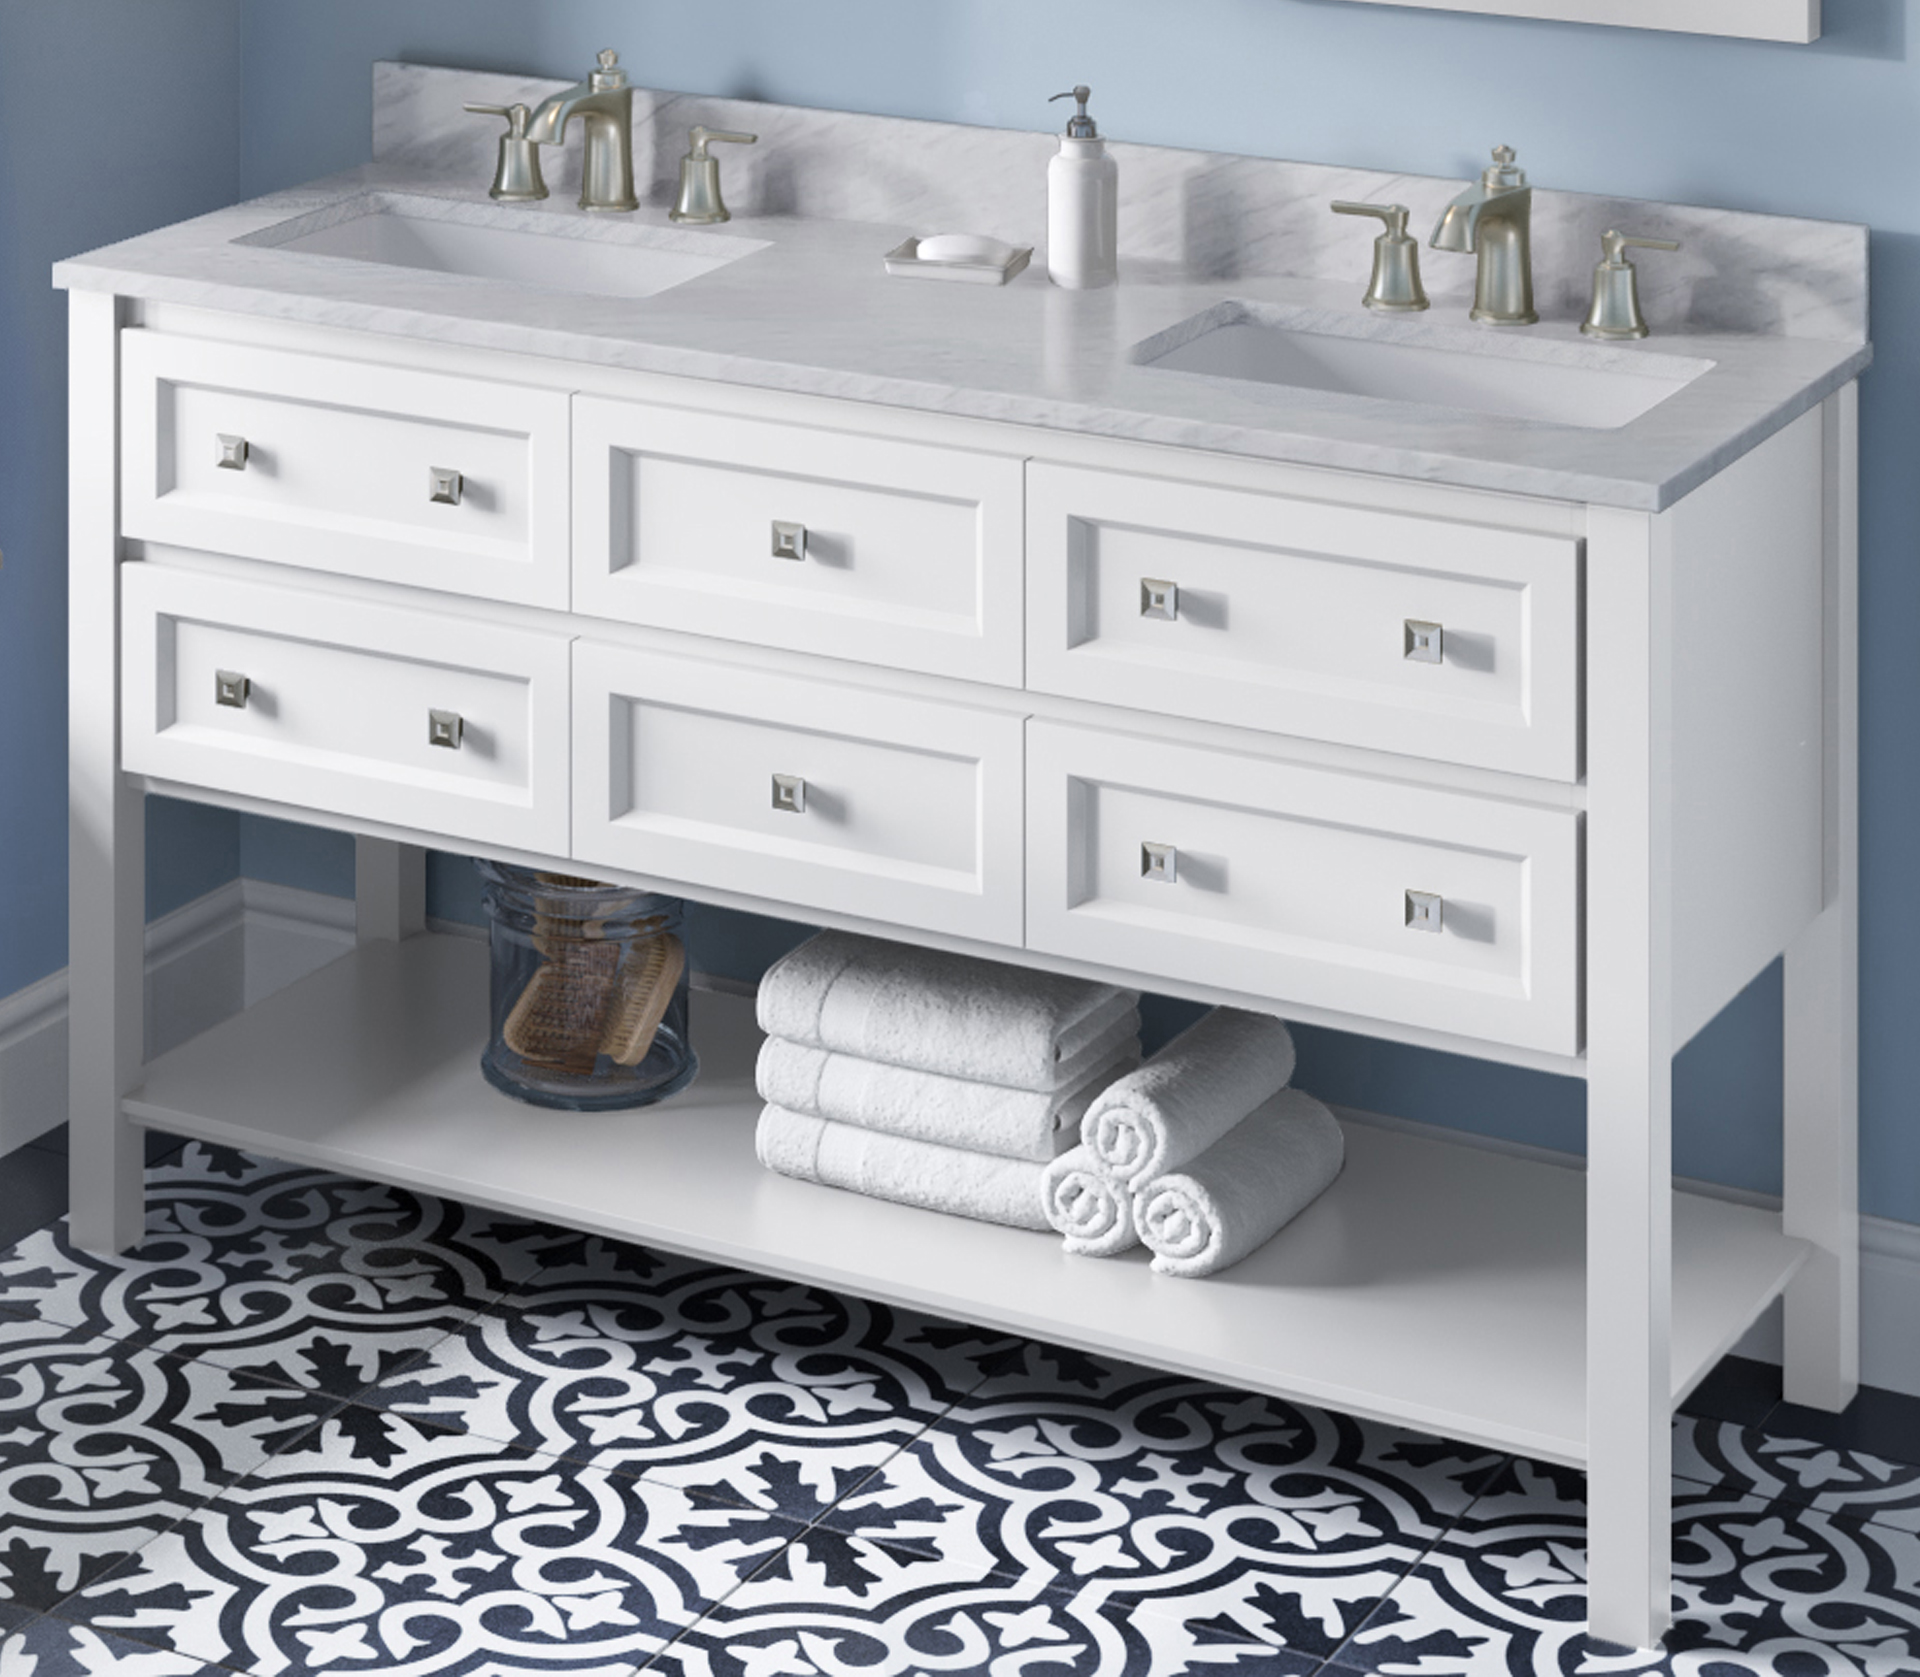 "60"" White Bathroom Vanity Finish, Double Bowl, White Carrara Marble Vanity Top, Two Undermount Rectangle Bowls"